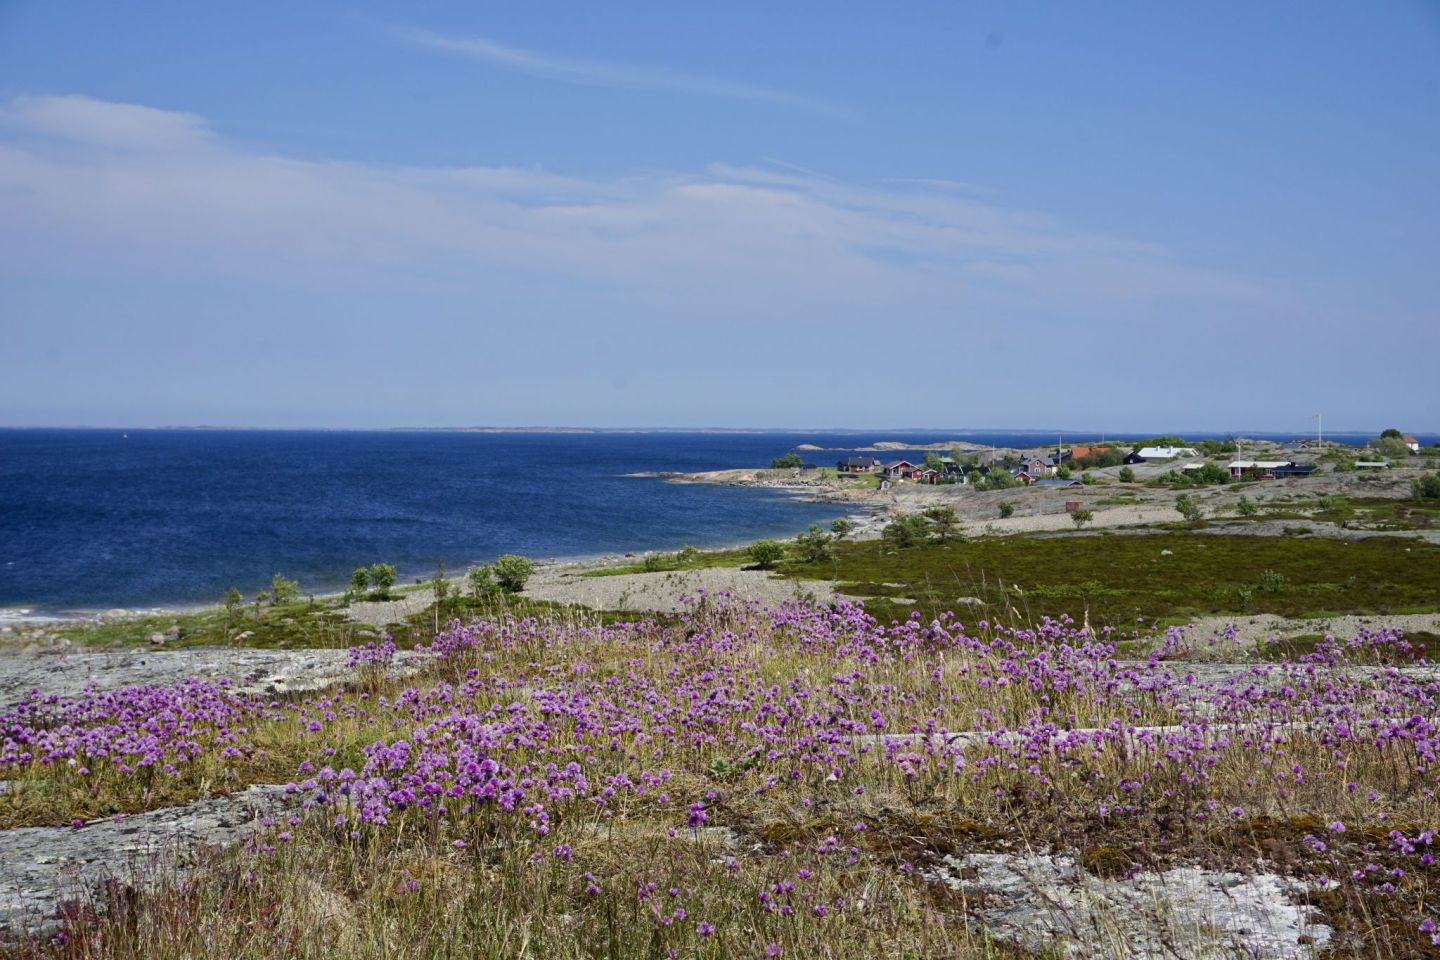 nteresting facts about the island of Jurmo in the Archipelago Sea